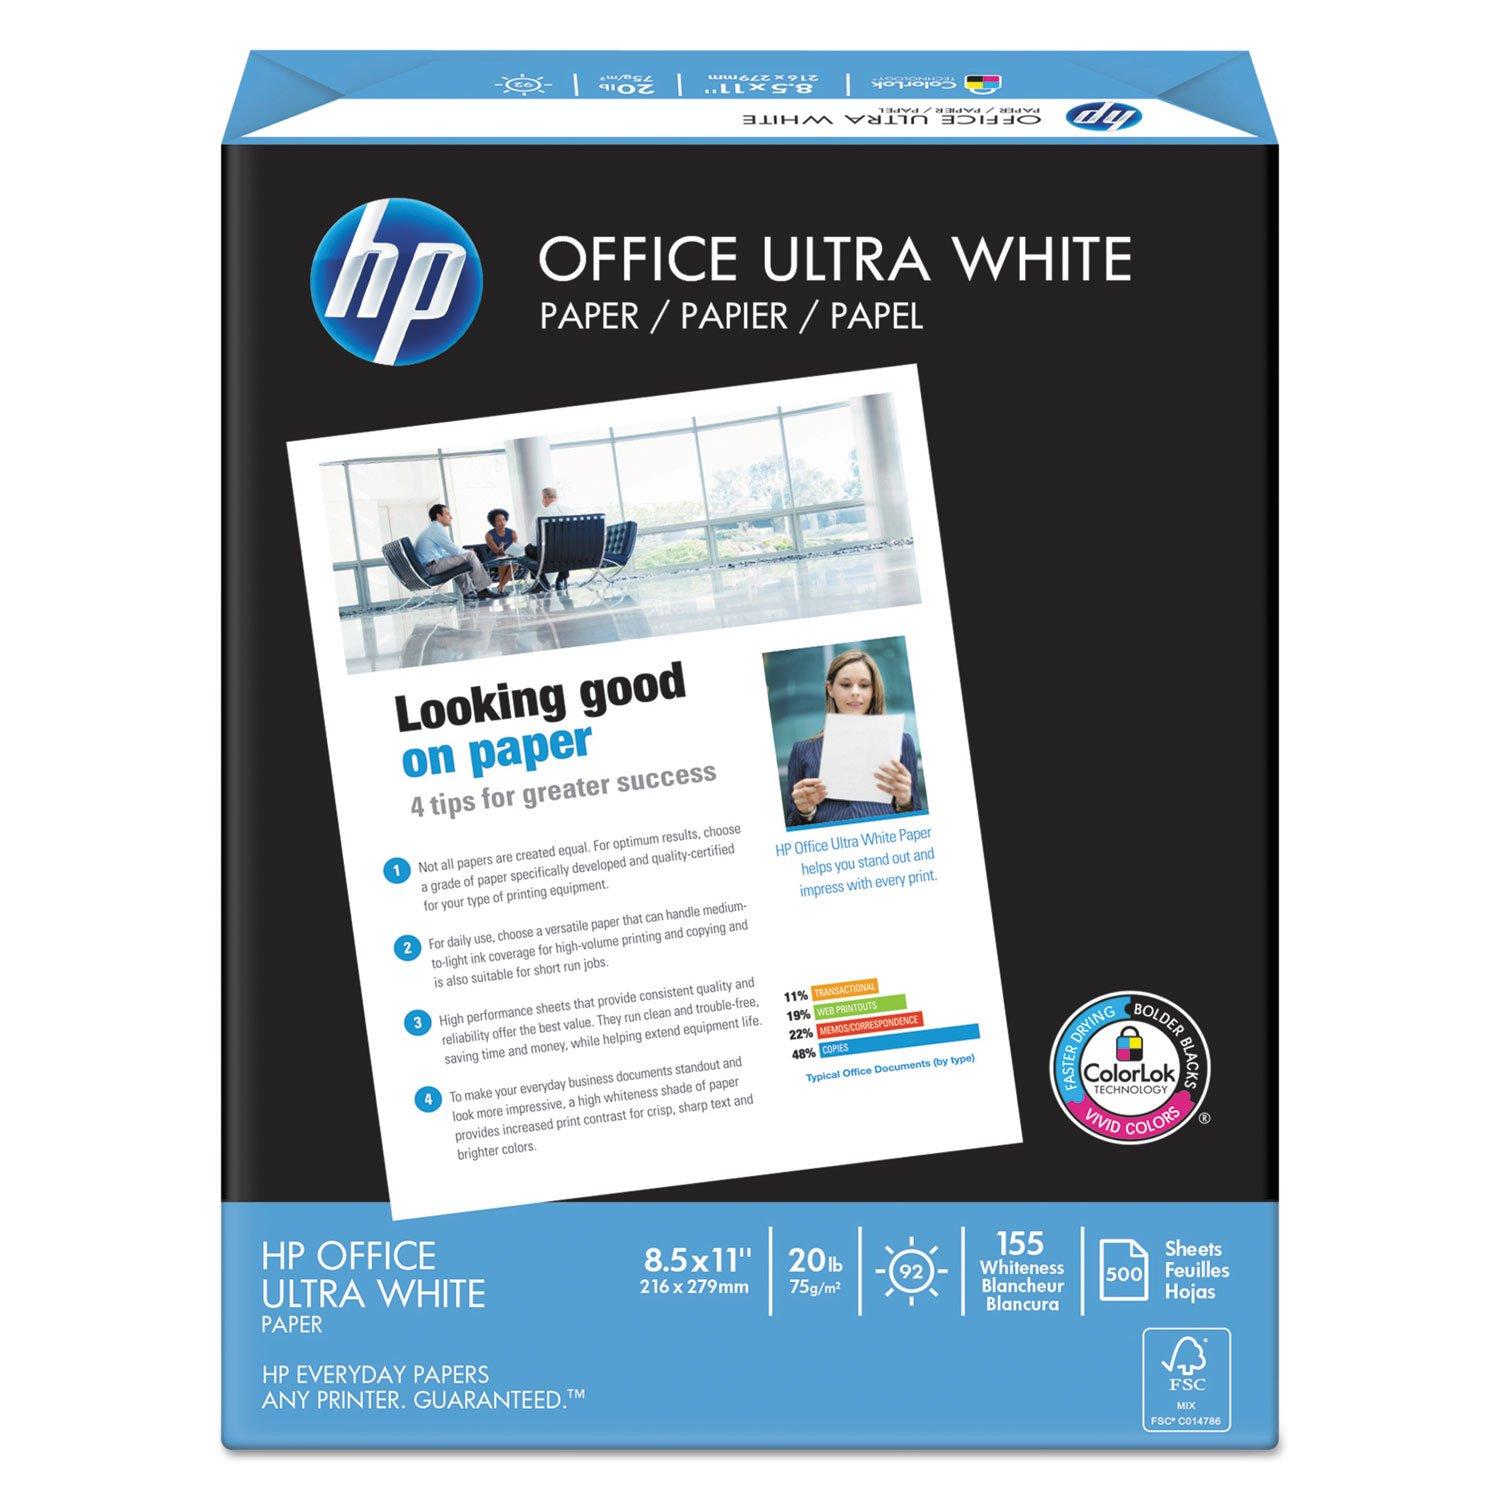 HP Printer Paper, Office20 Paper, 8.5 x 11, Letter Size, 20lb, 92 Bright, 10 Ream Case / 5,000 Sheets (112101C) Acid Free Paper